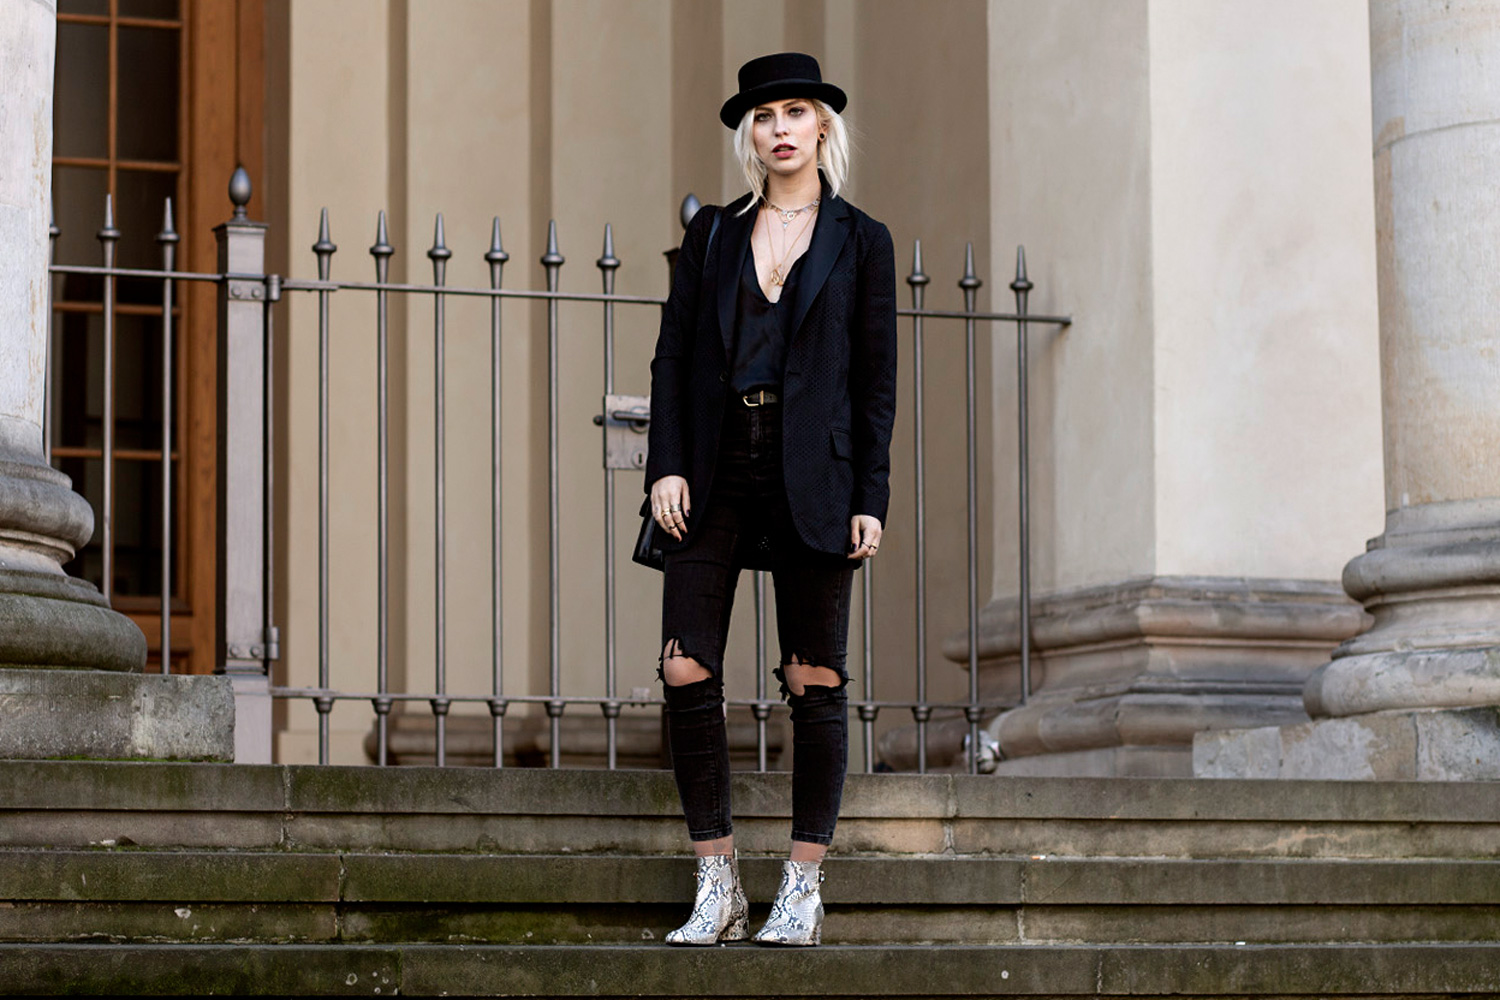 black-circus-outfit-10